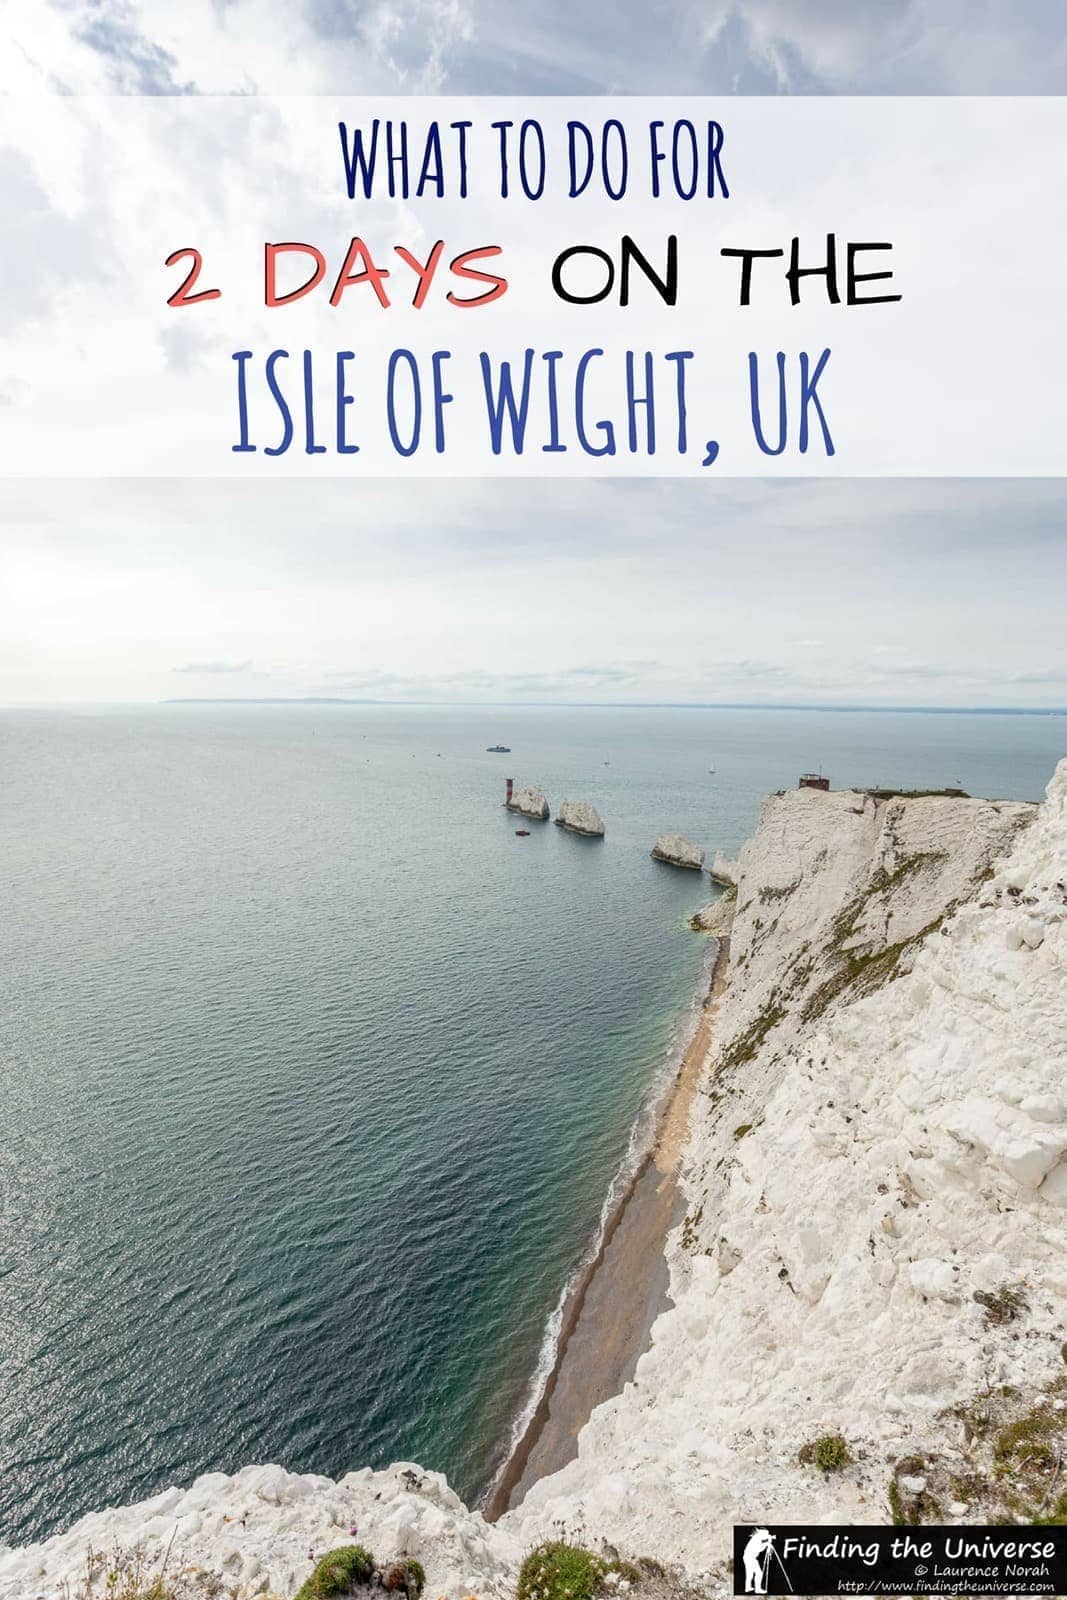 A 2 Day Isle Of Wight Itinerary covering some of the main attractions on the island as well as ideas for where to stay, how to get around and where to eat!